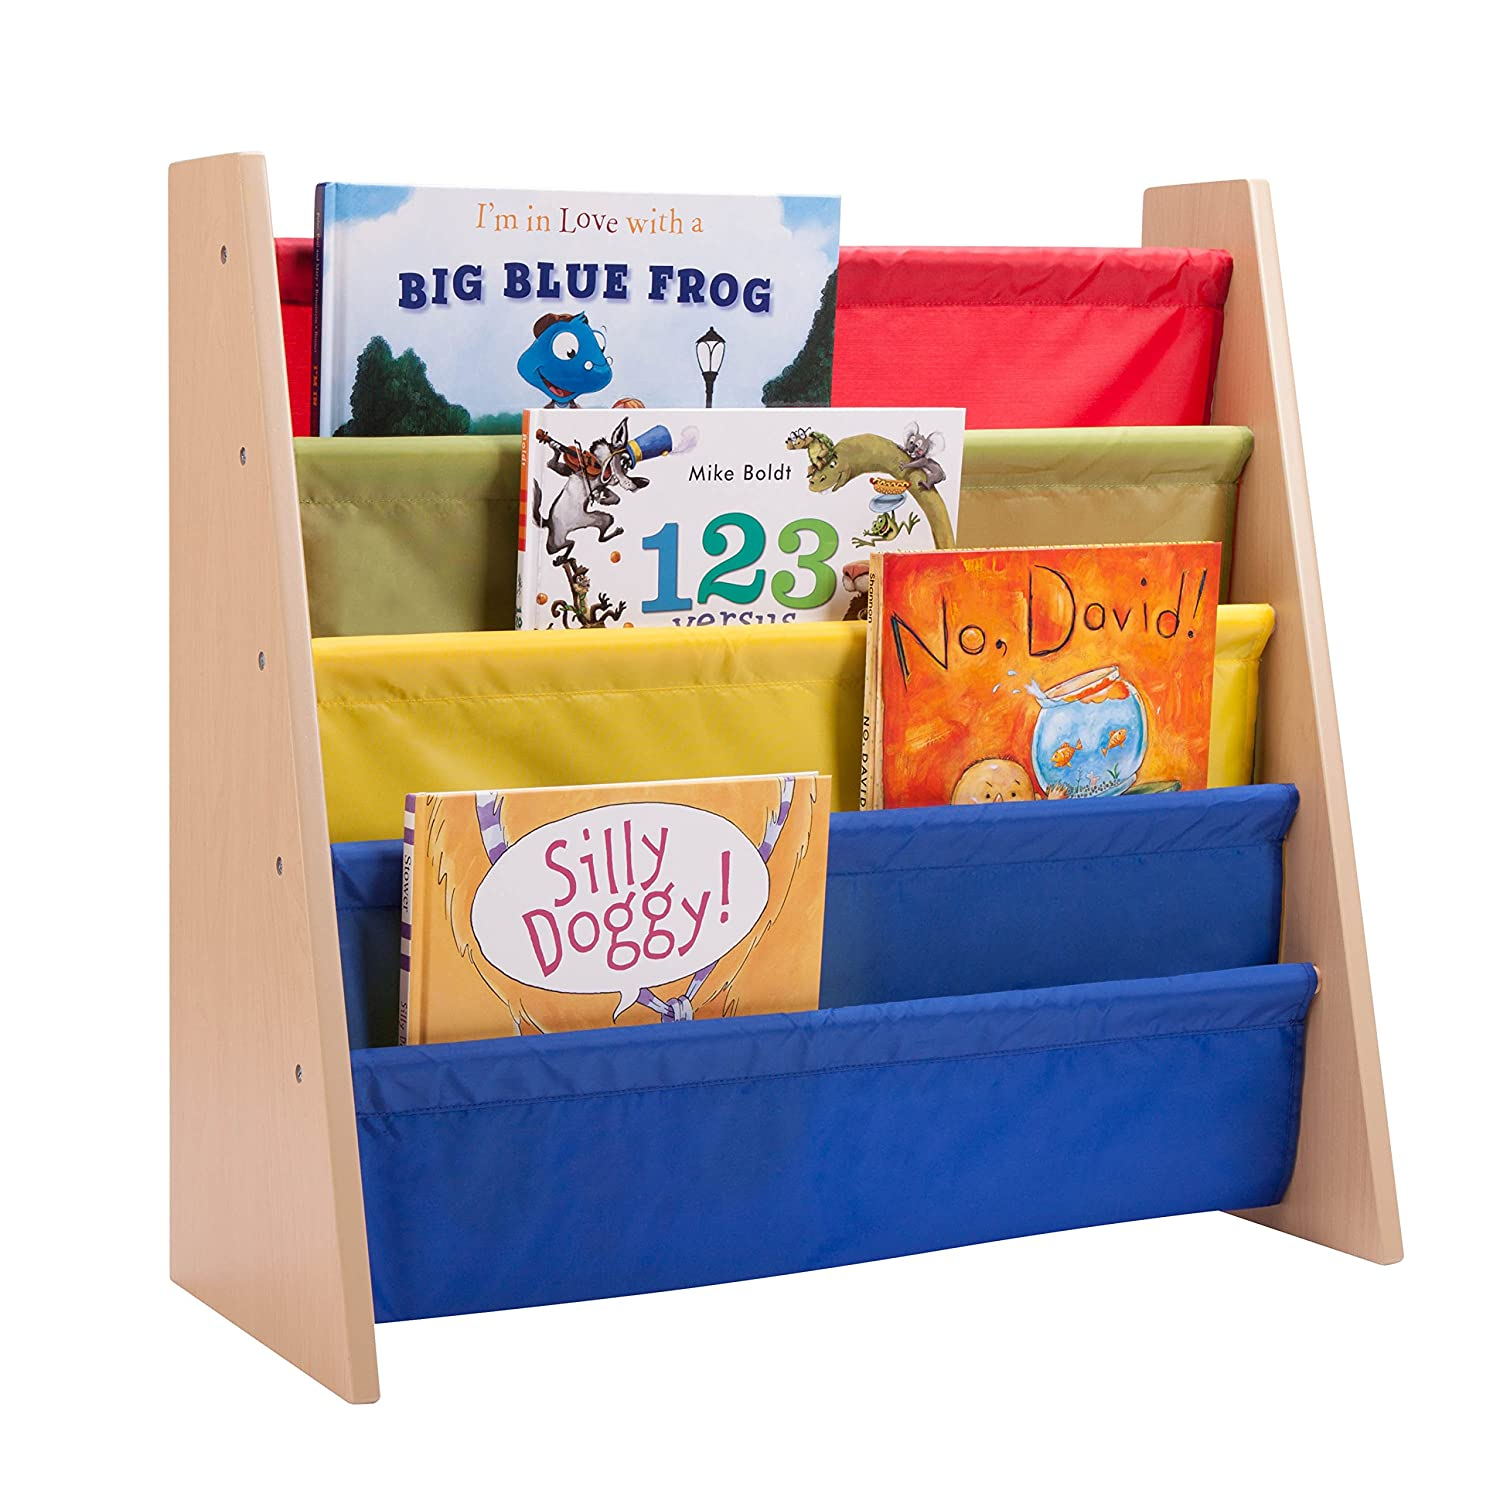 amazoncom honey can do shf 05077 itsy bitsy book rack primary colors home kitchen - Tot Tutors Book Rack Primary Colors